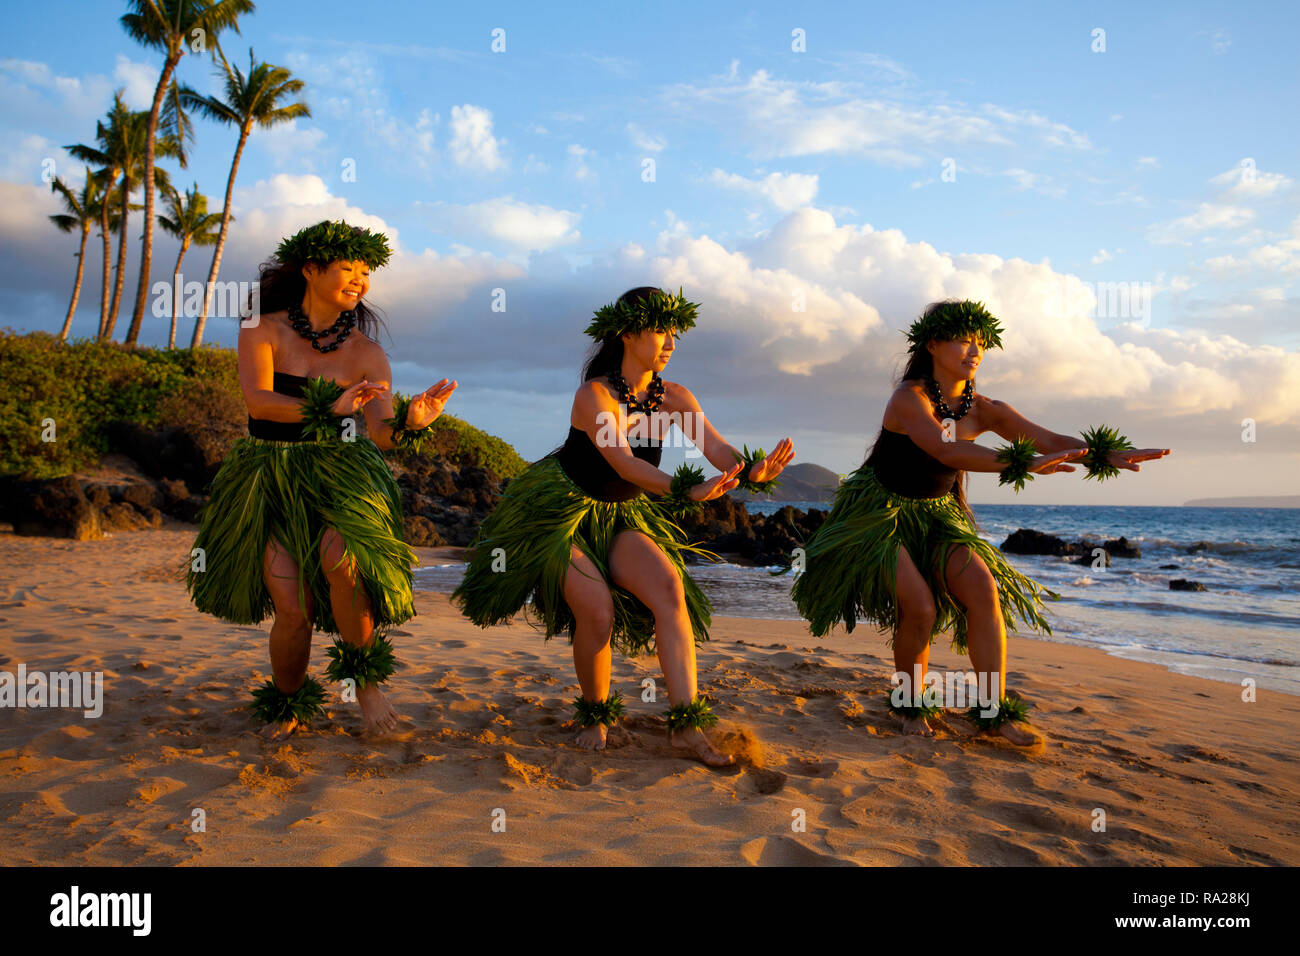 Three hula dancers on the beach at south Maui, Hawaii. - Stock Image